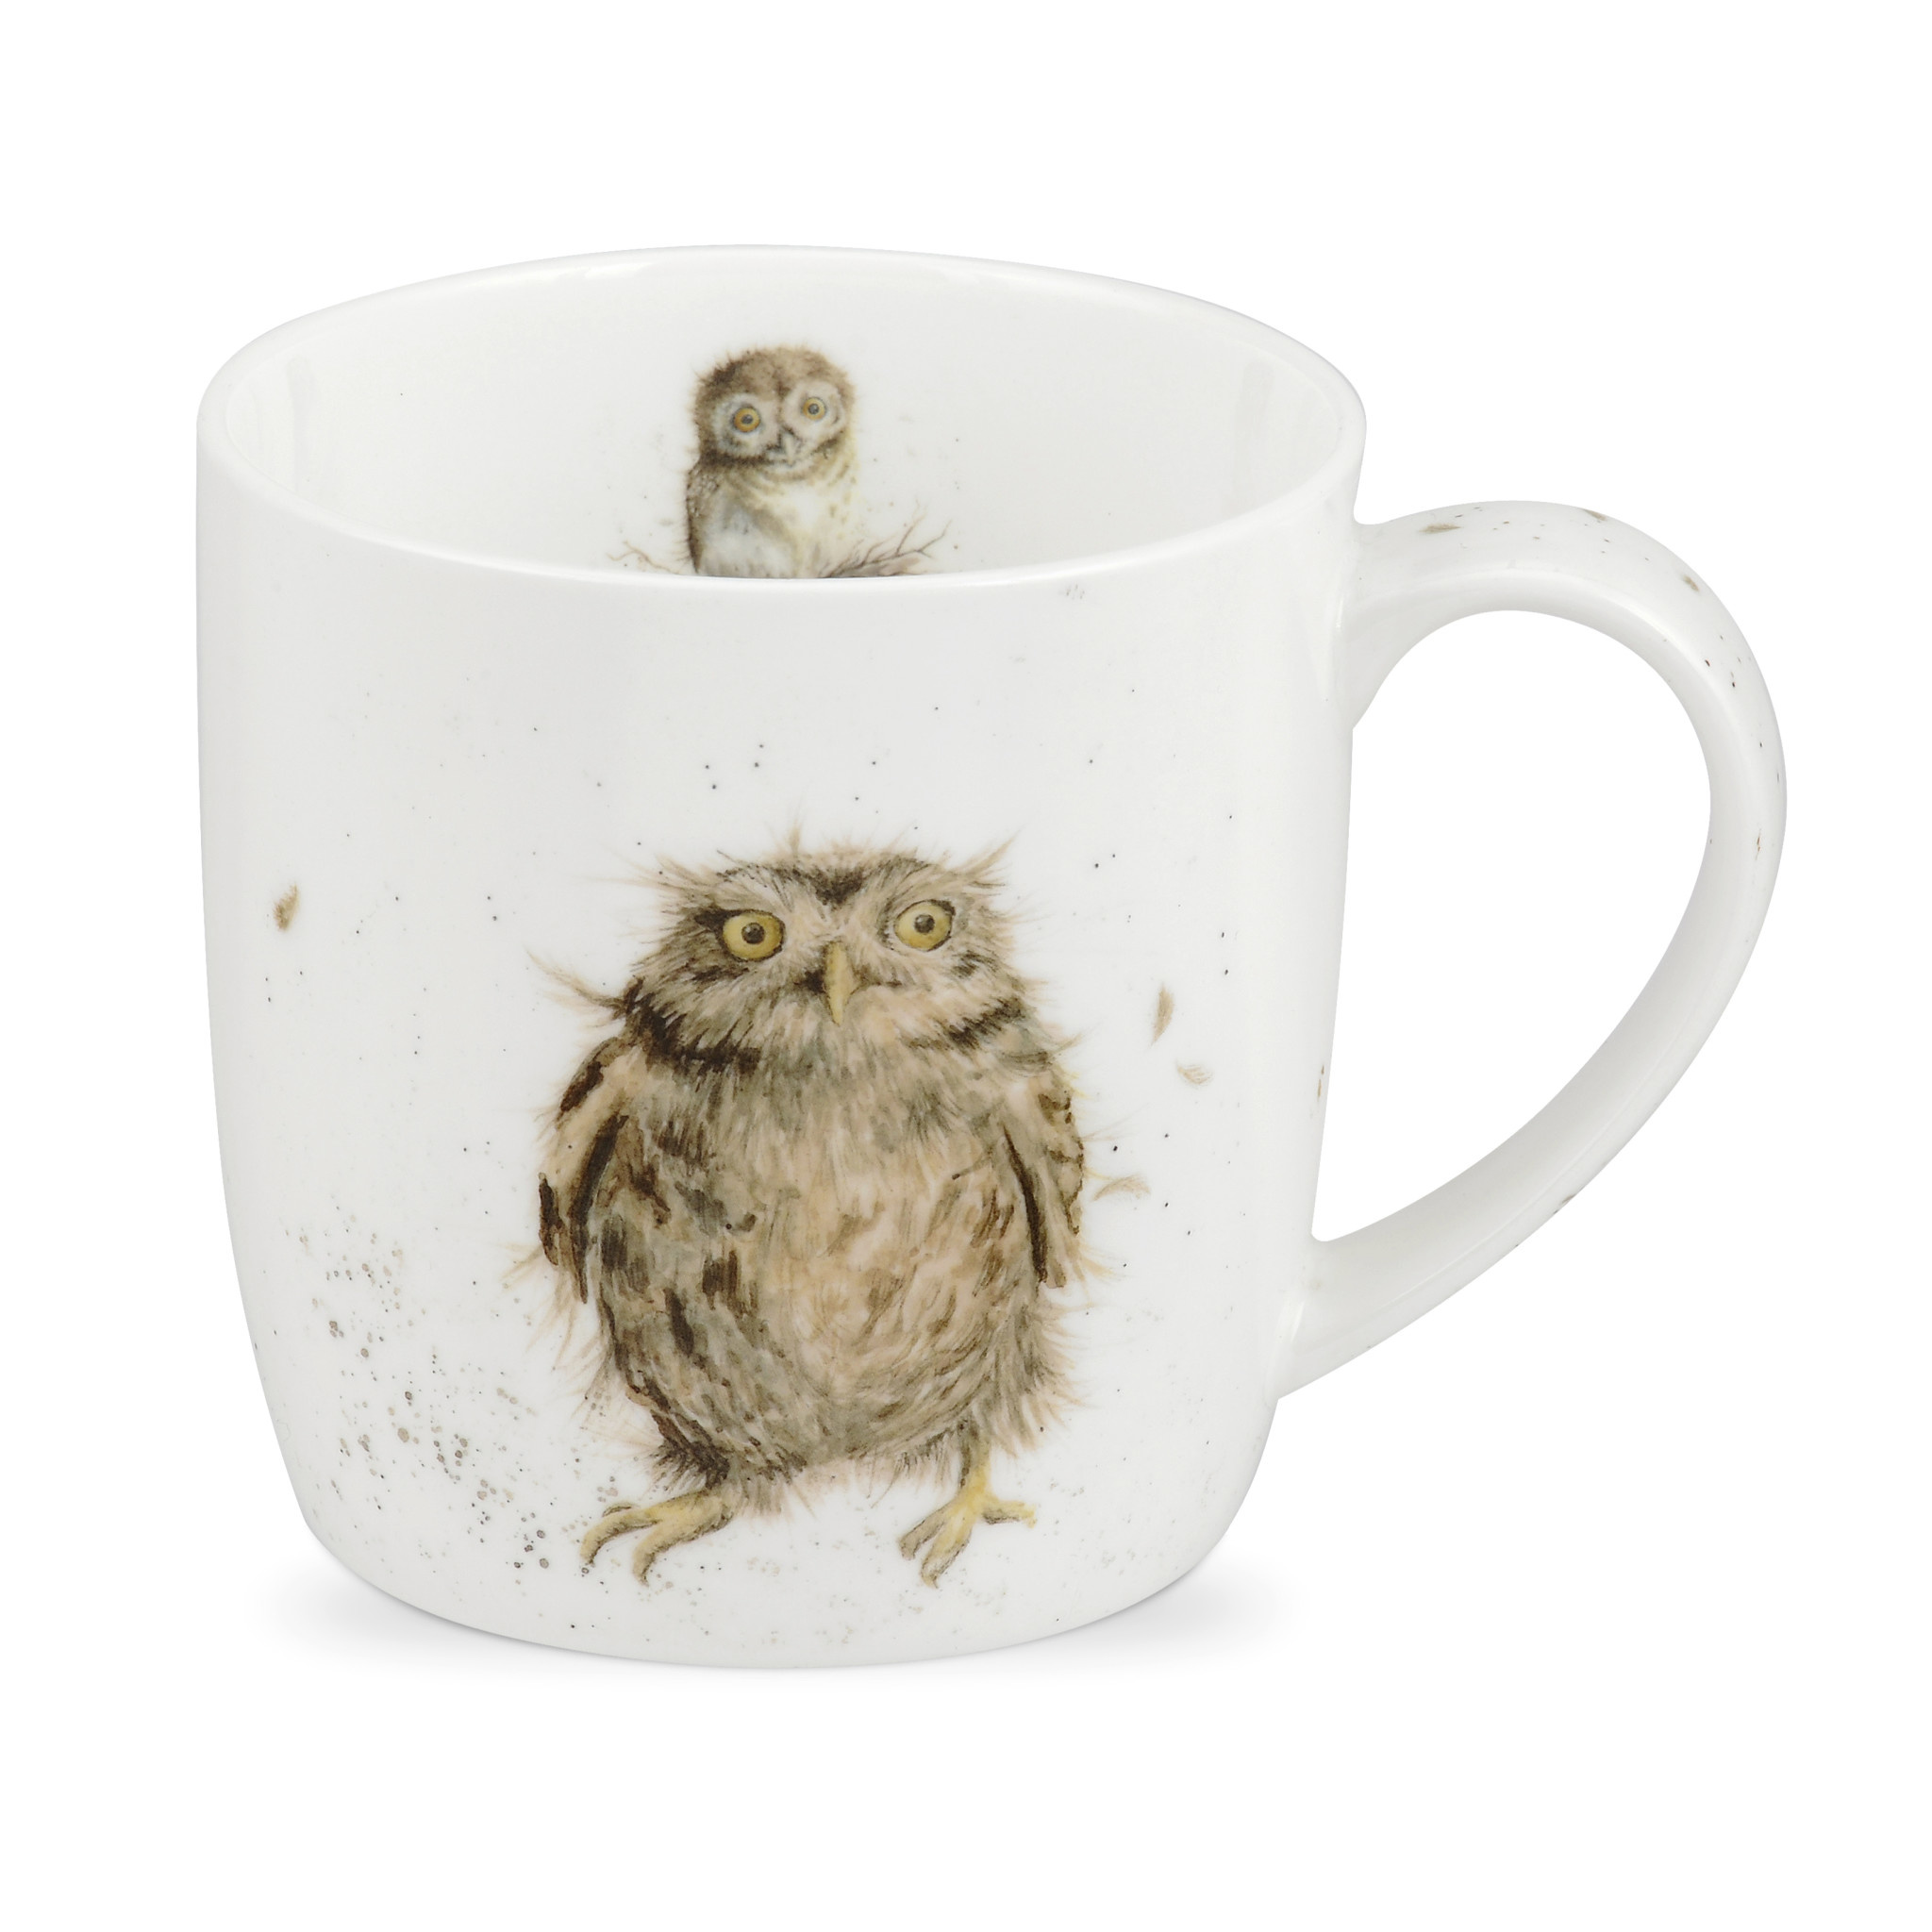 Wrendale Designs 'What a Hoot' Mug